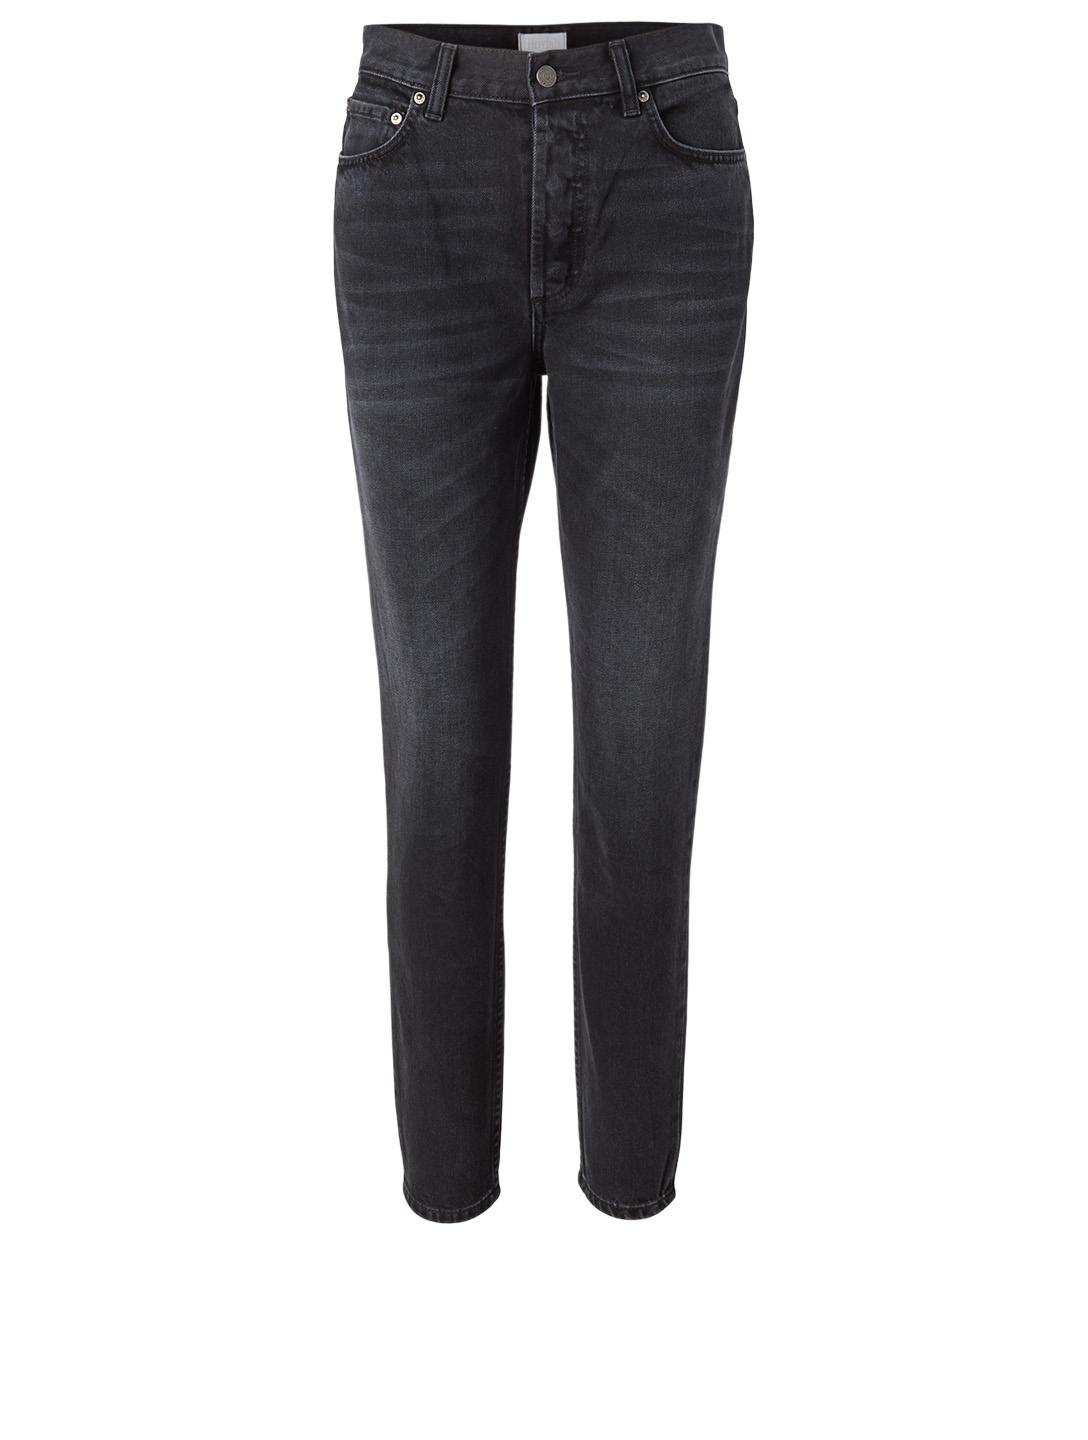 BOYISH The Billy Skinny Jeans Women's Black